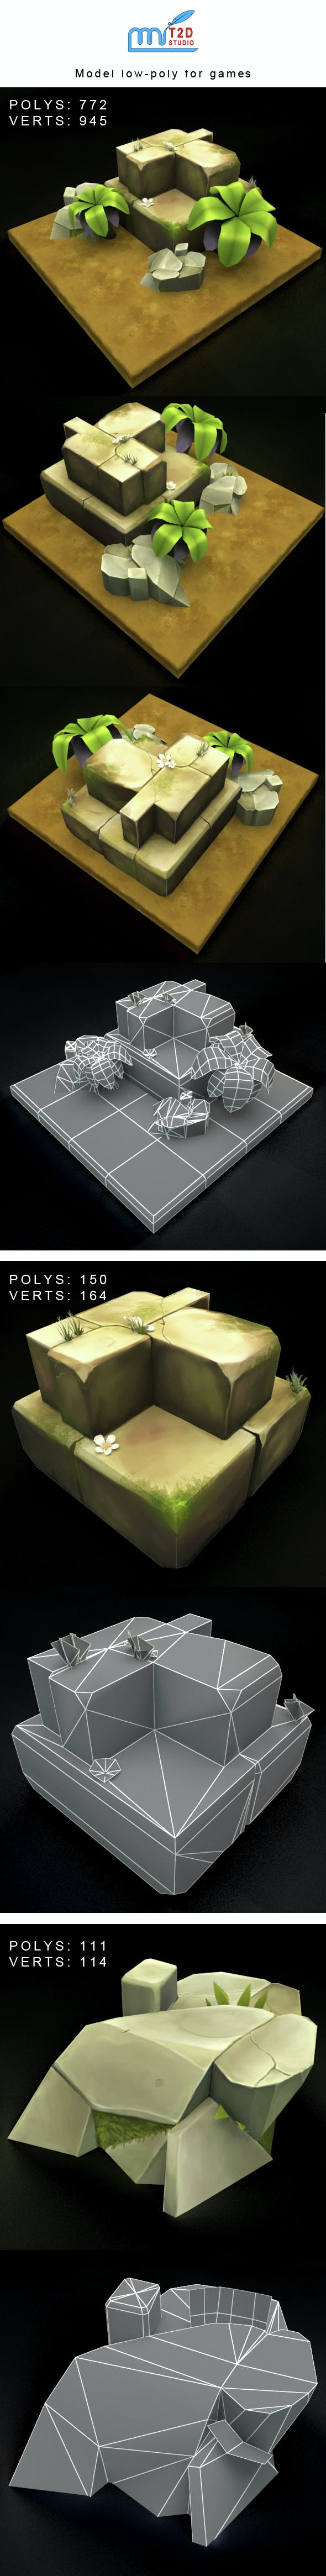 Models low-poly for webgame, mobile game or tvc - 3DOcean Item for Sale